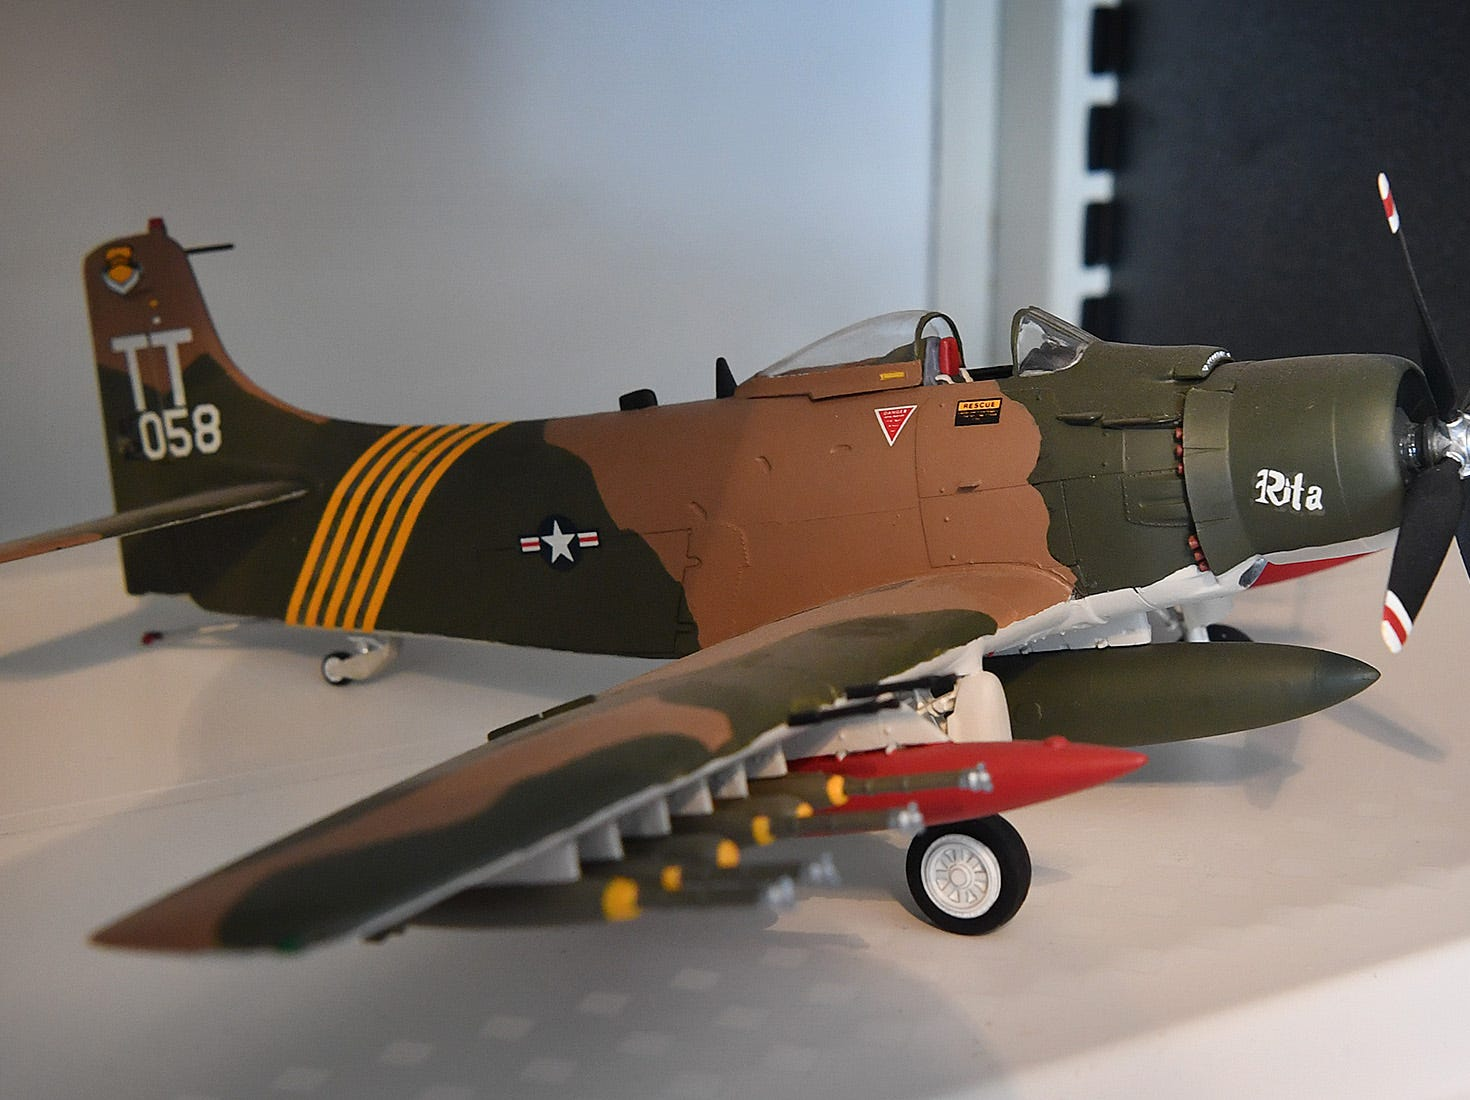 Jack Riddle built this replica Douglas A-1 Skyraider as part of his collection of military aircraft models from WWII, Korea, and Vietnam.